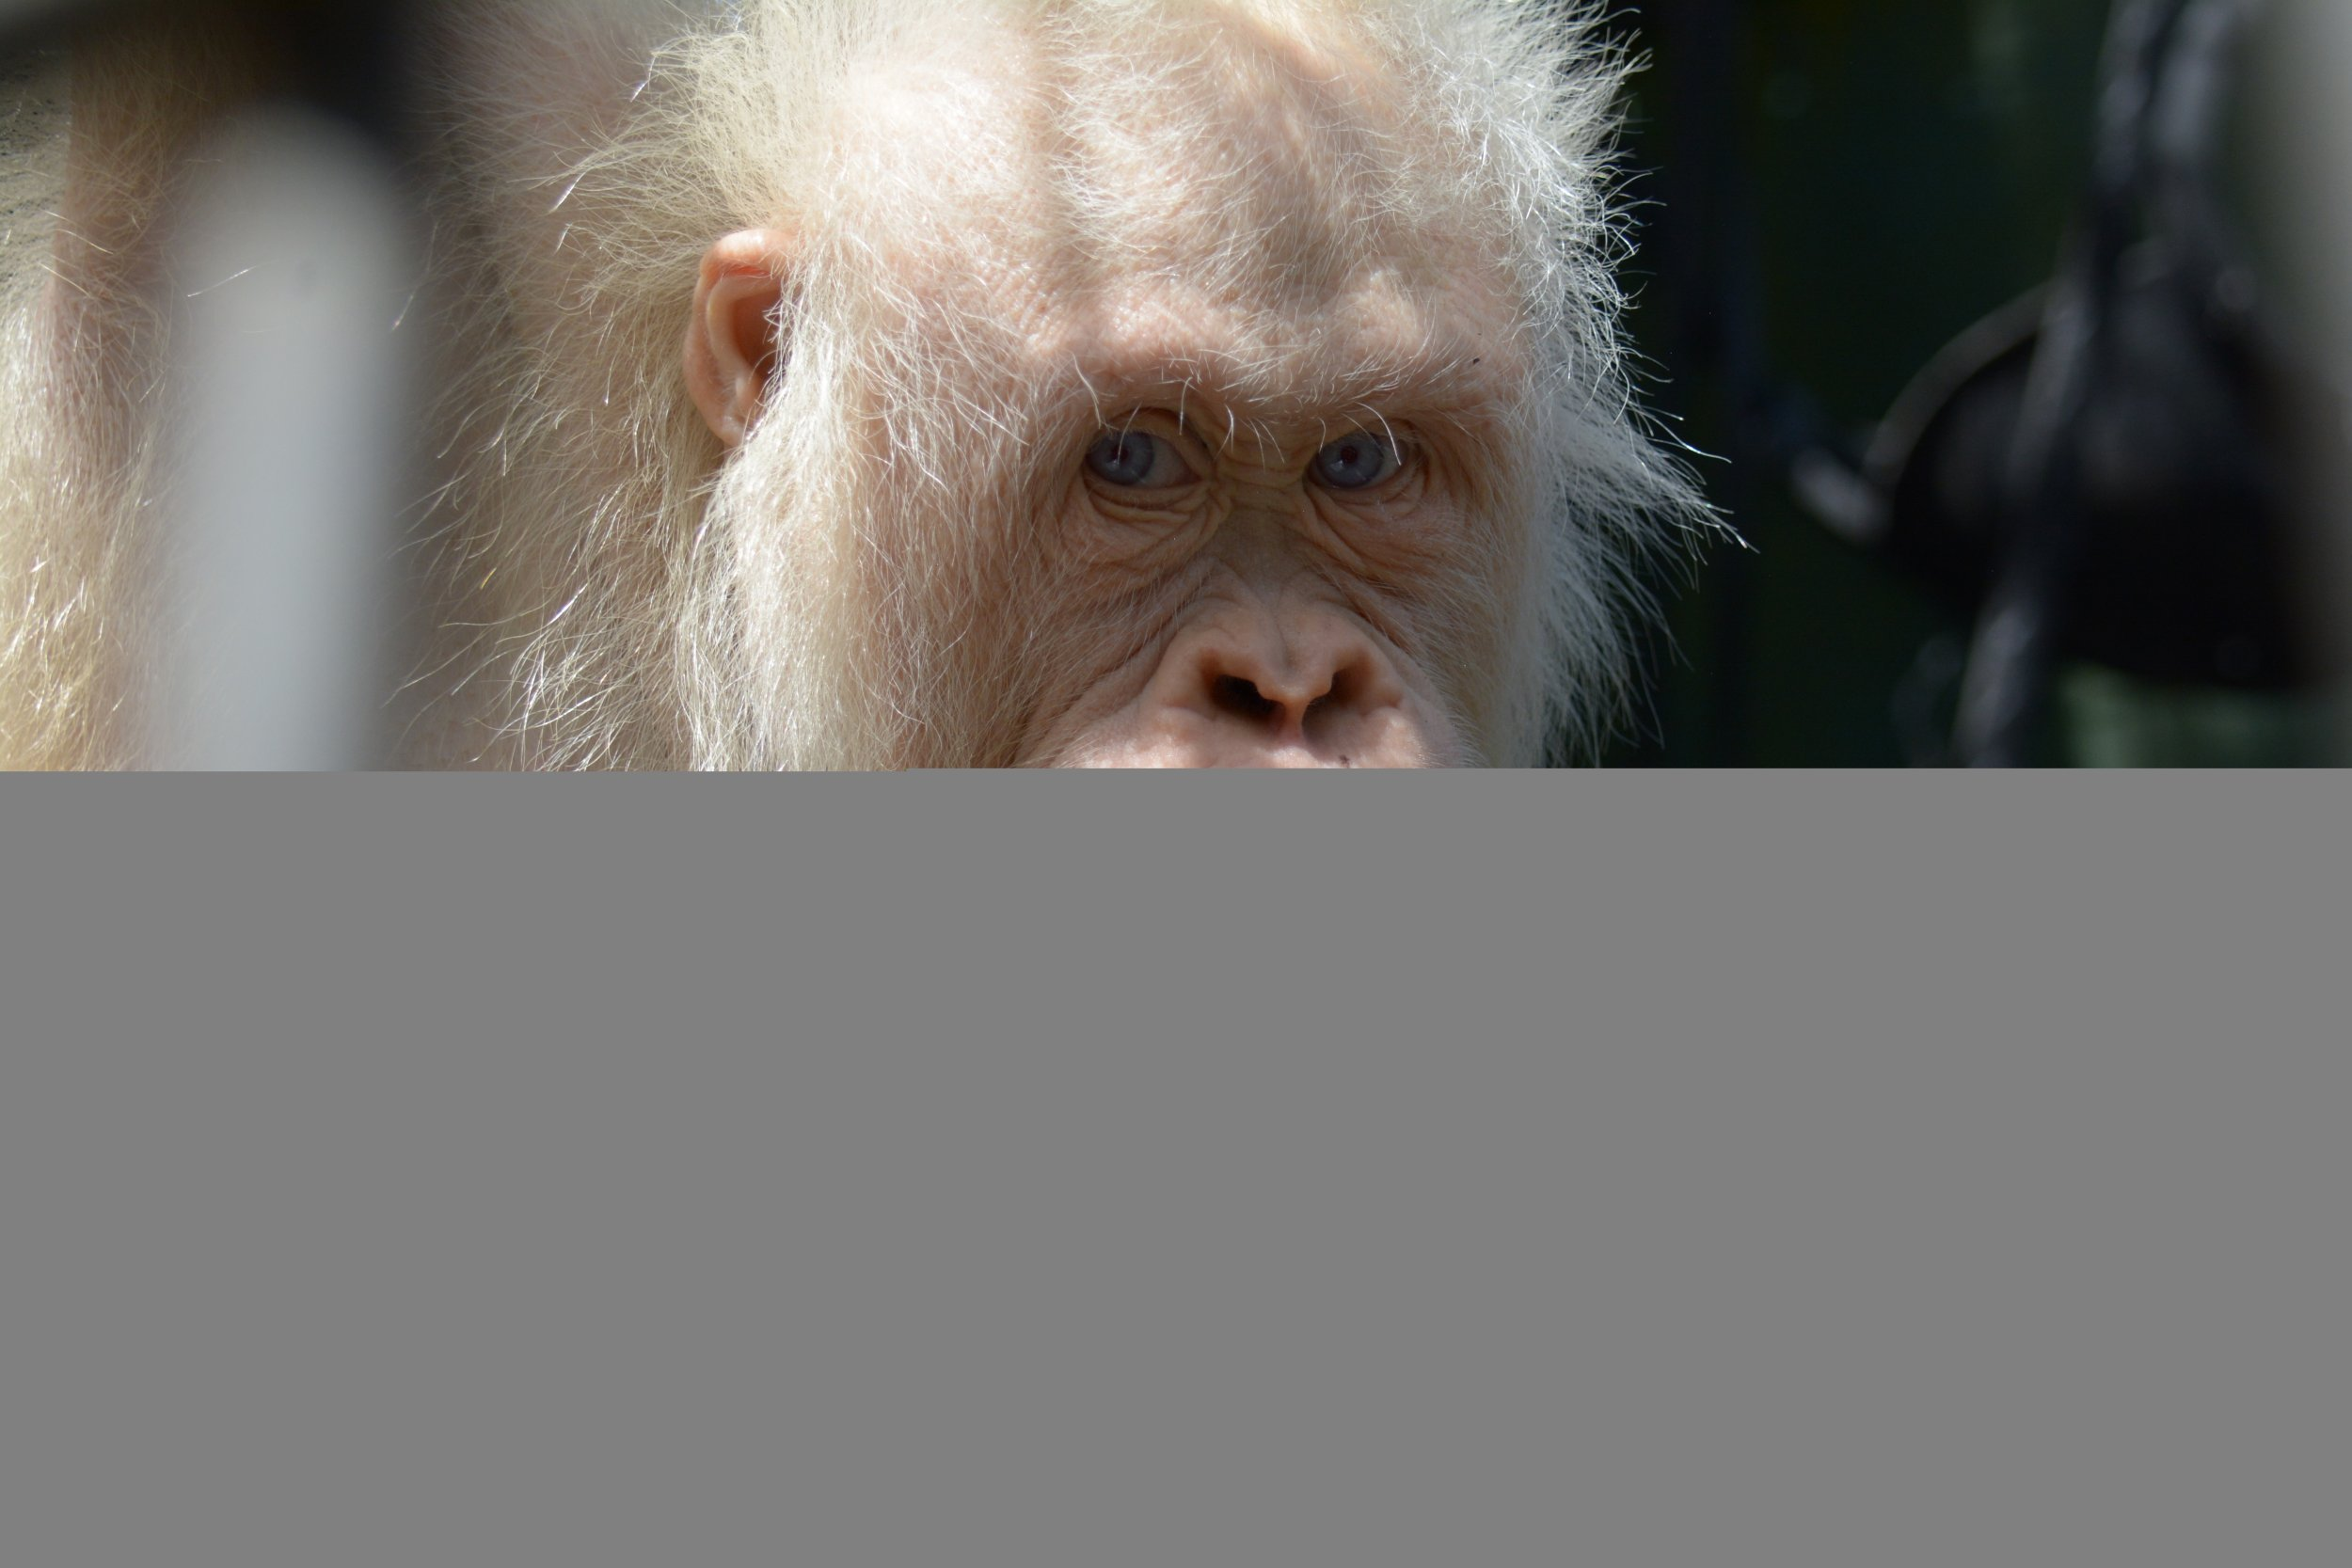 The Worlds Only Known Albino Orangutan Is Moving To Her